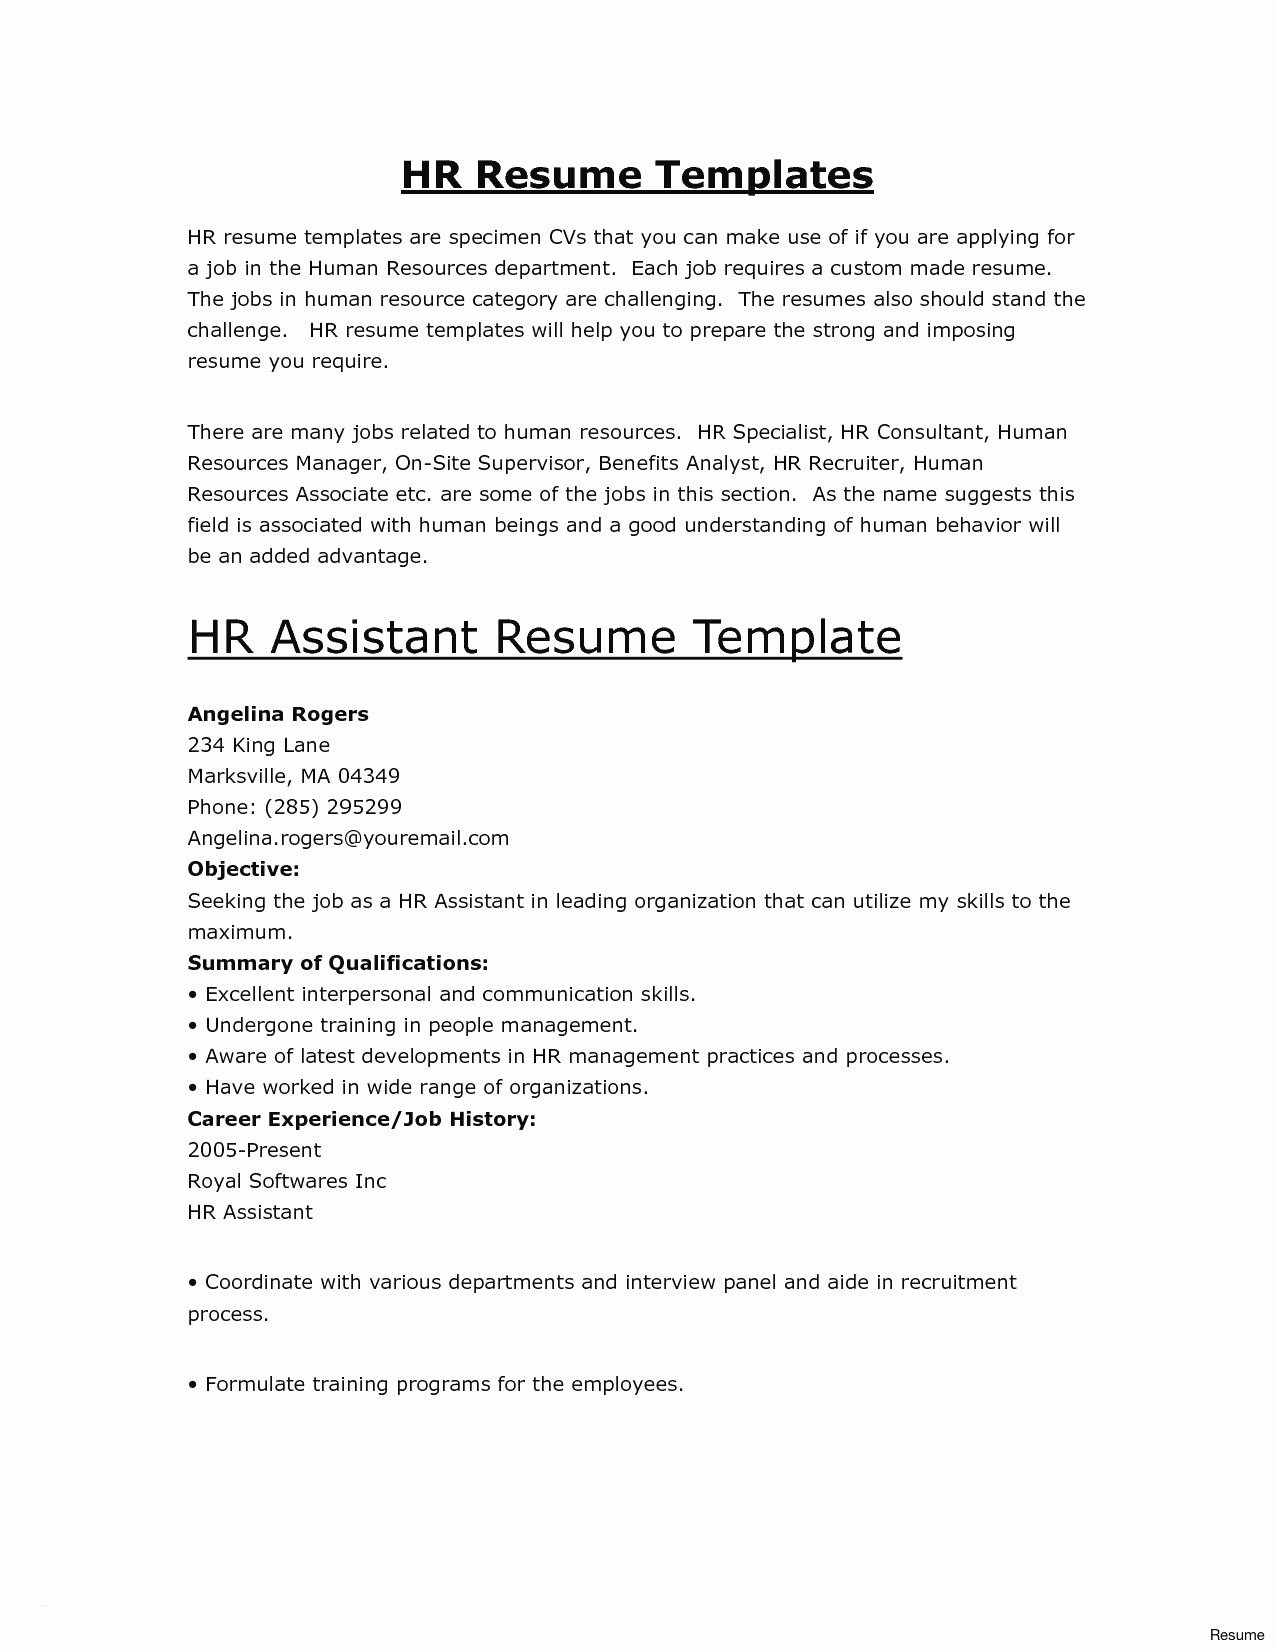 Resume Website Examples - Resume Job Description Best Self Employed Resume New Luxury